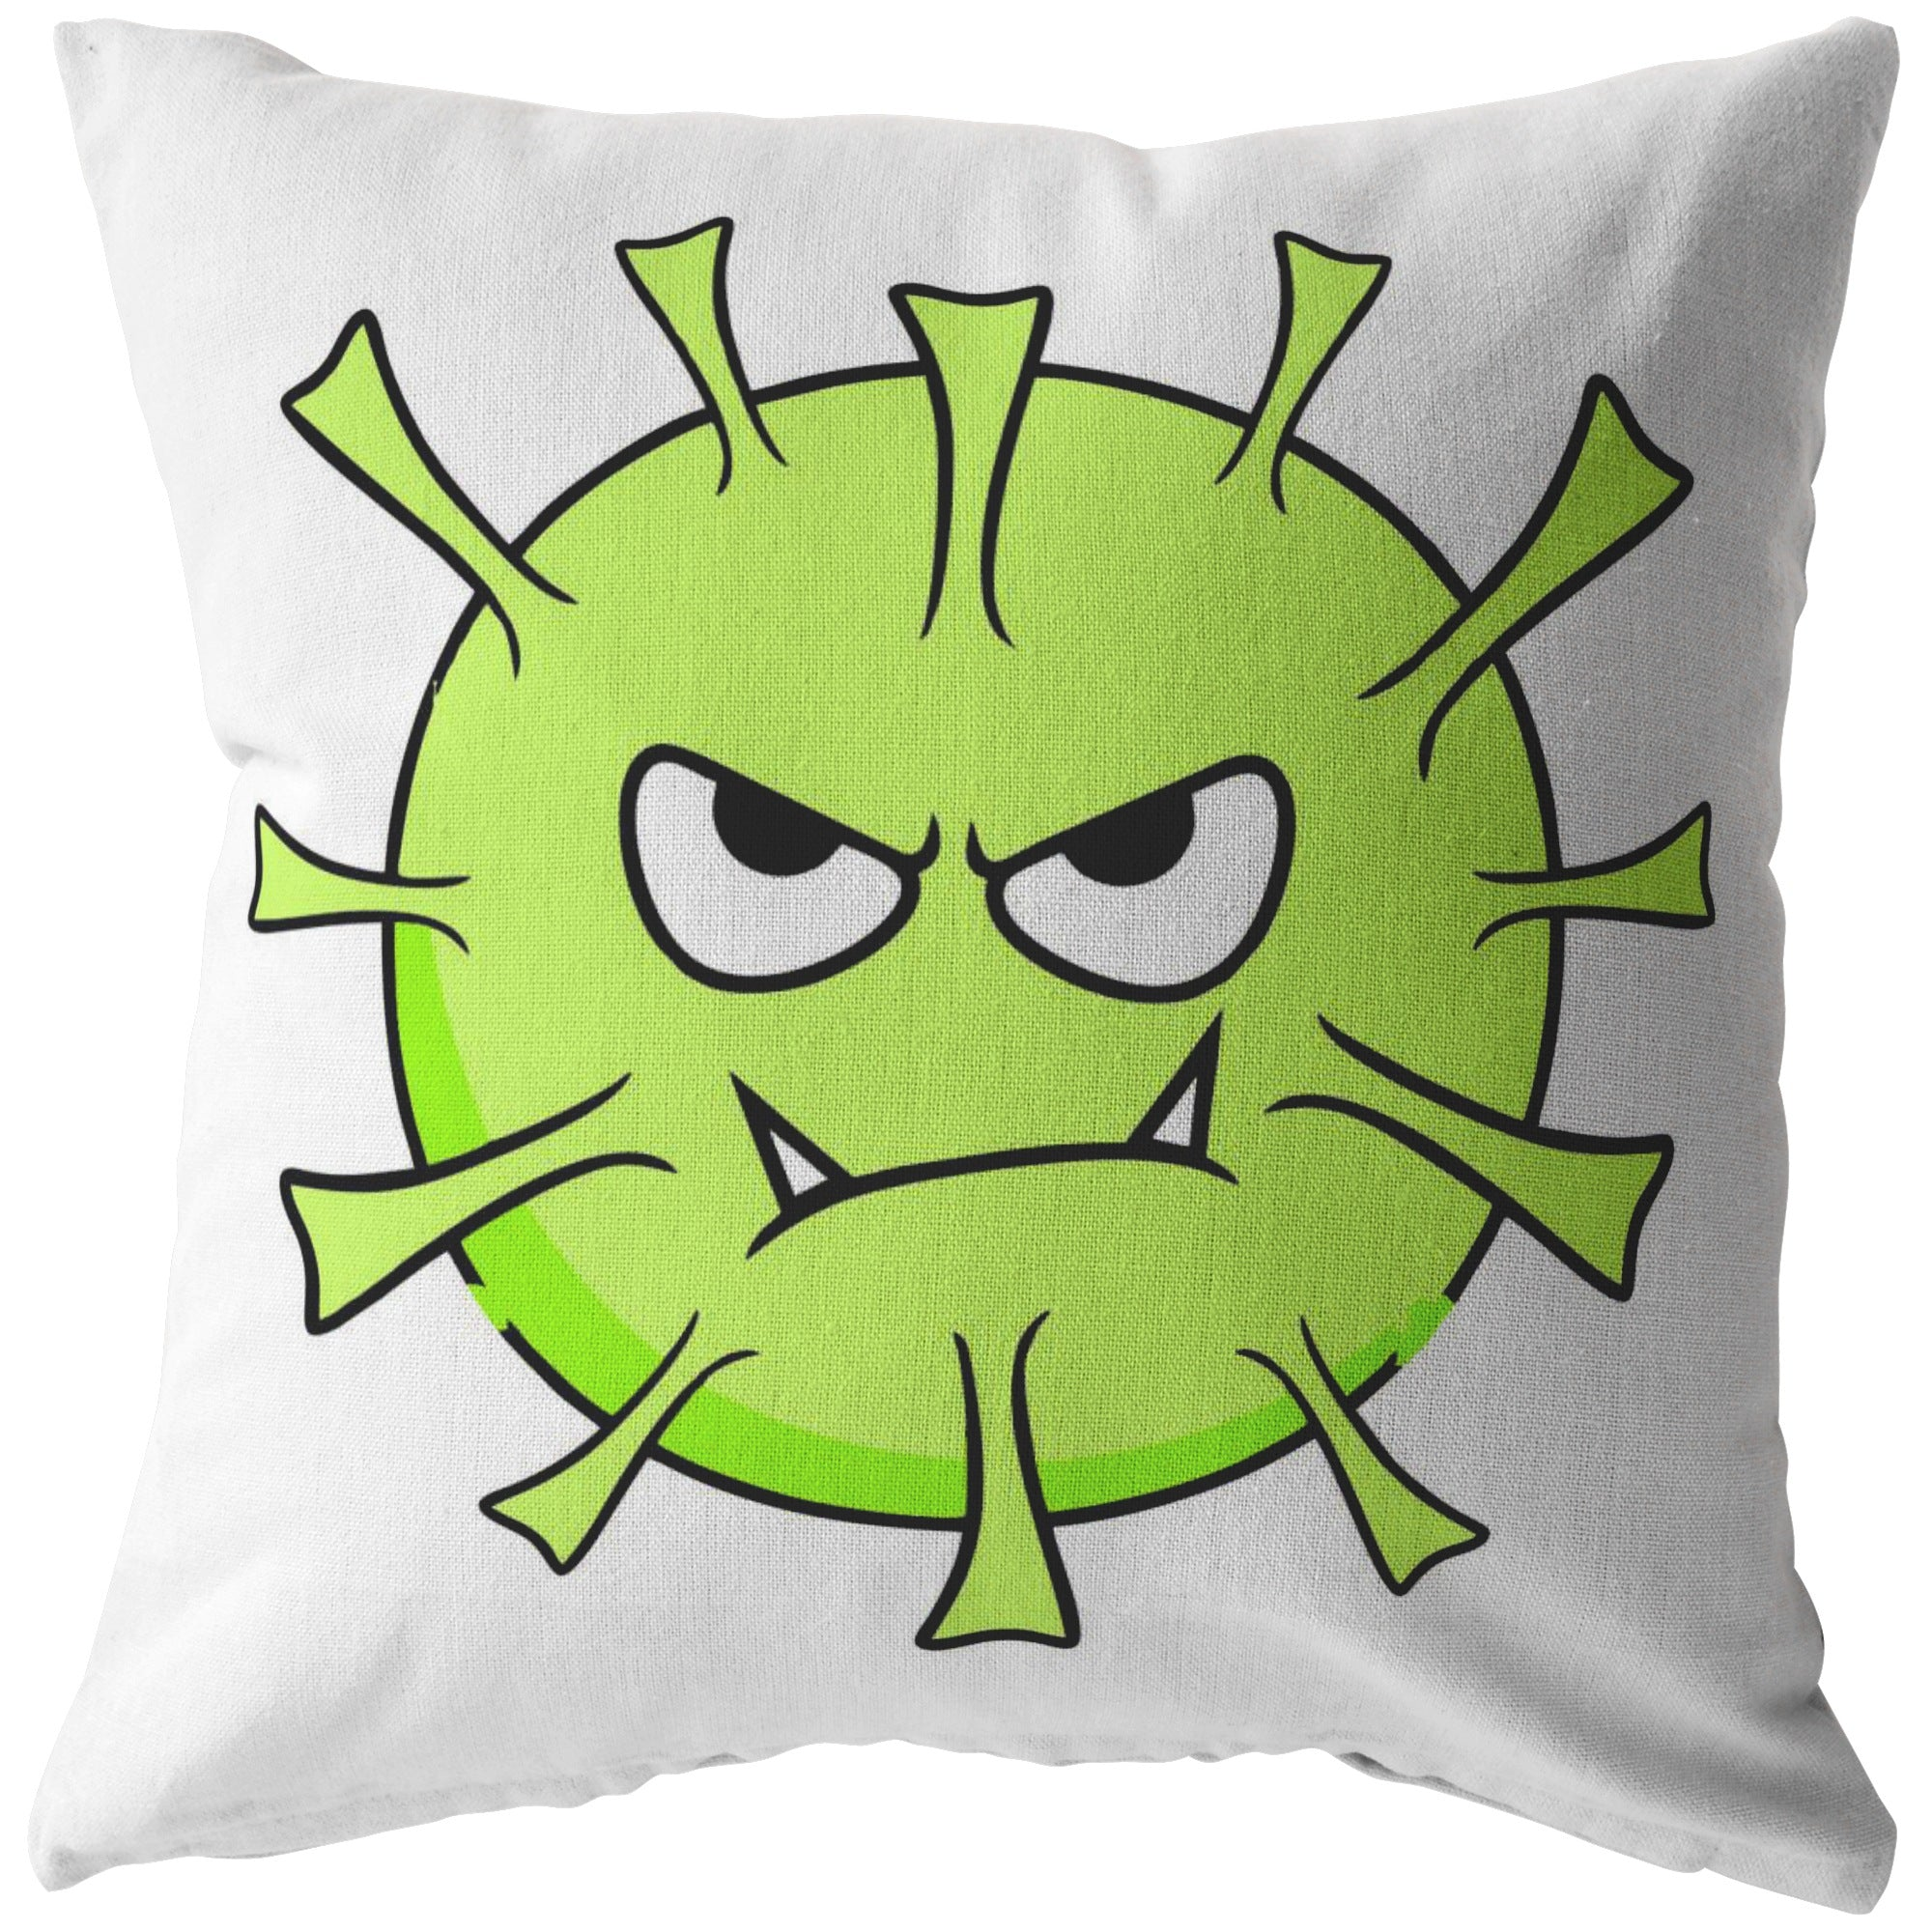 Lyme Disease Monster Pillow - The Unchargeables